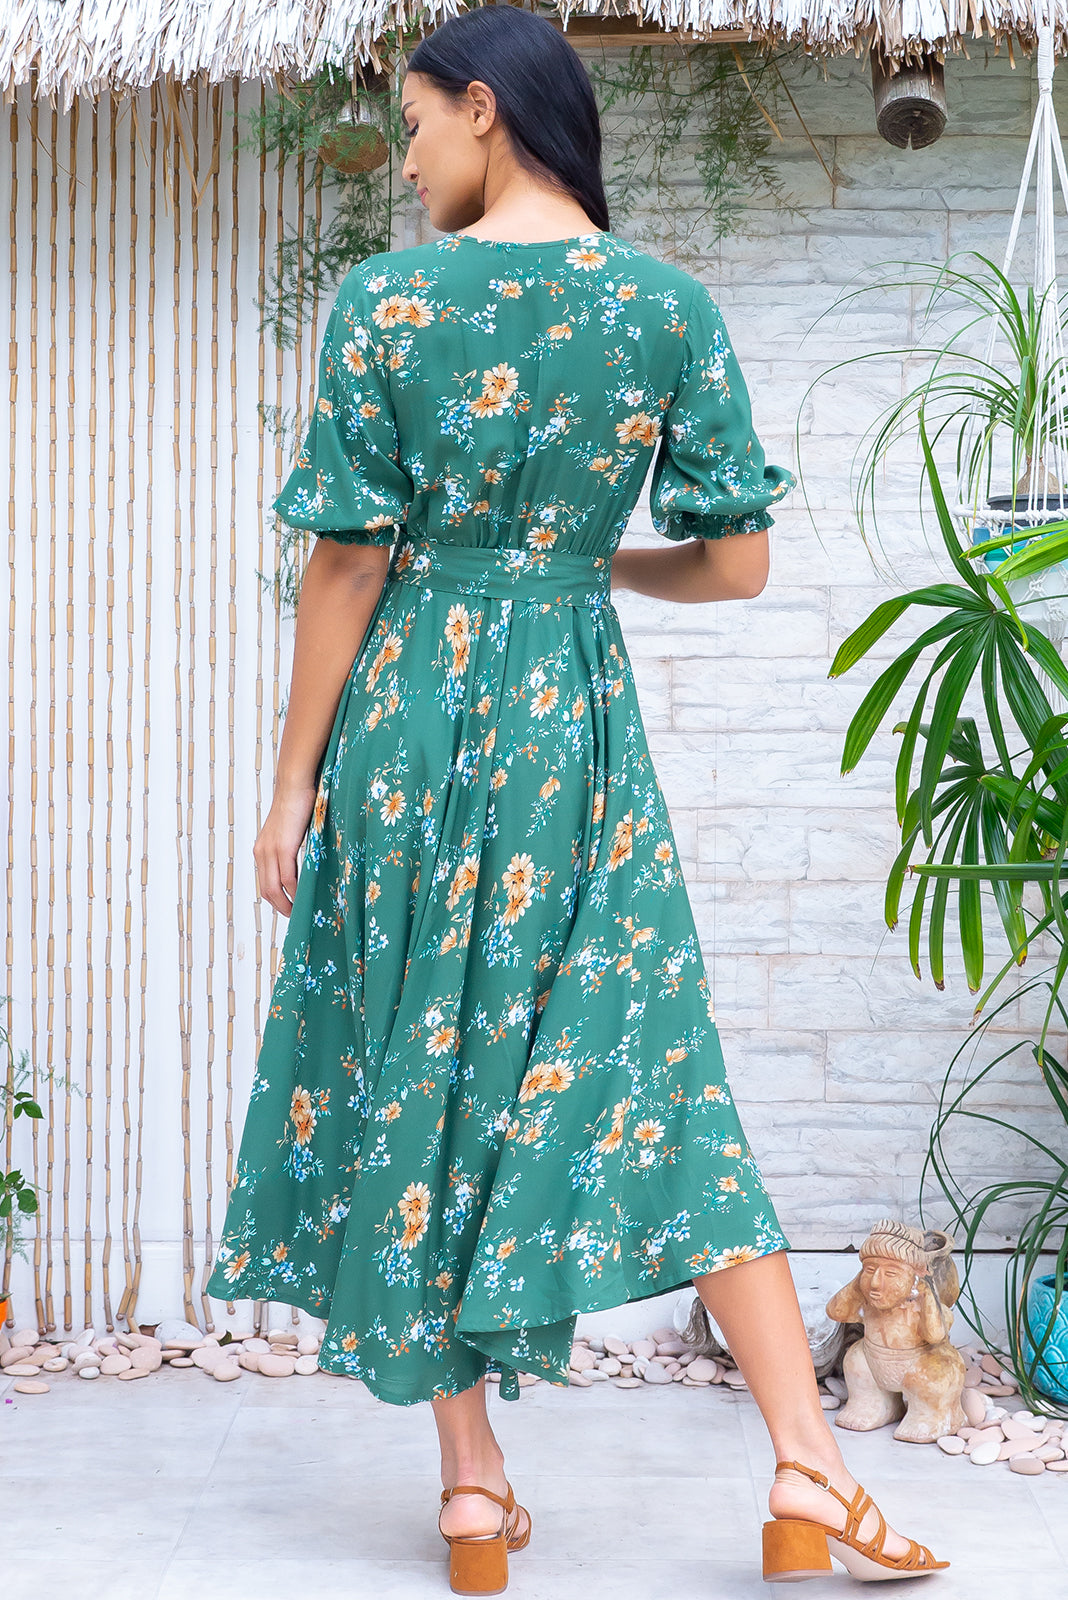 The Primrose Springtime Green Dress is a retro V neckline midi dress featuring functional buttons from bust to waist, elasticated back waistband, 3/4 sleeve with shirring cuffs, side pockets, slightly curved hemline and 100% rayon in green base with classic floral print.